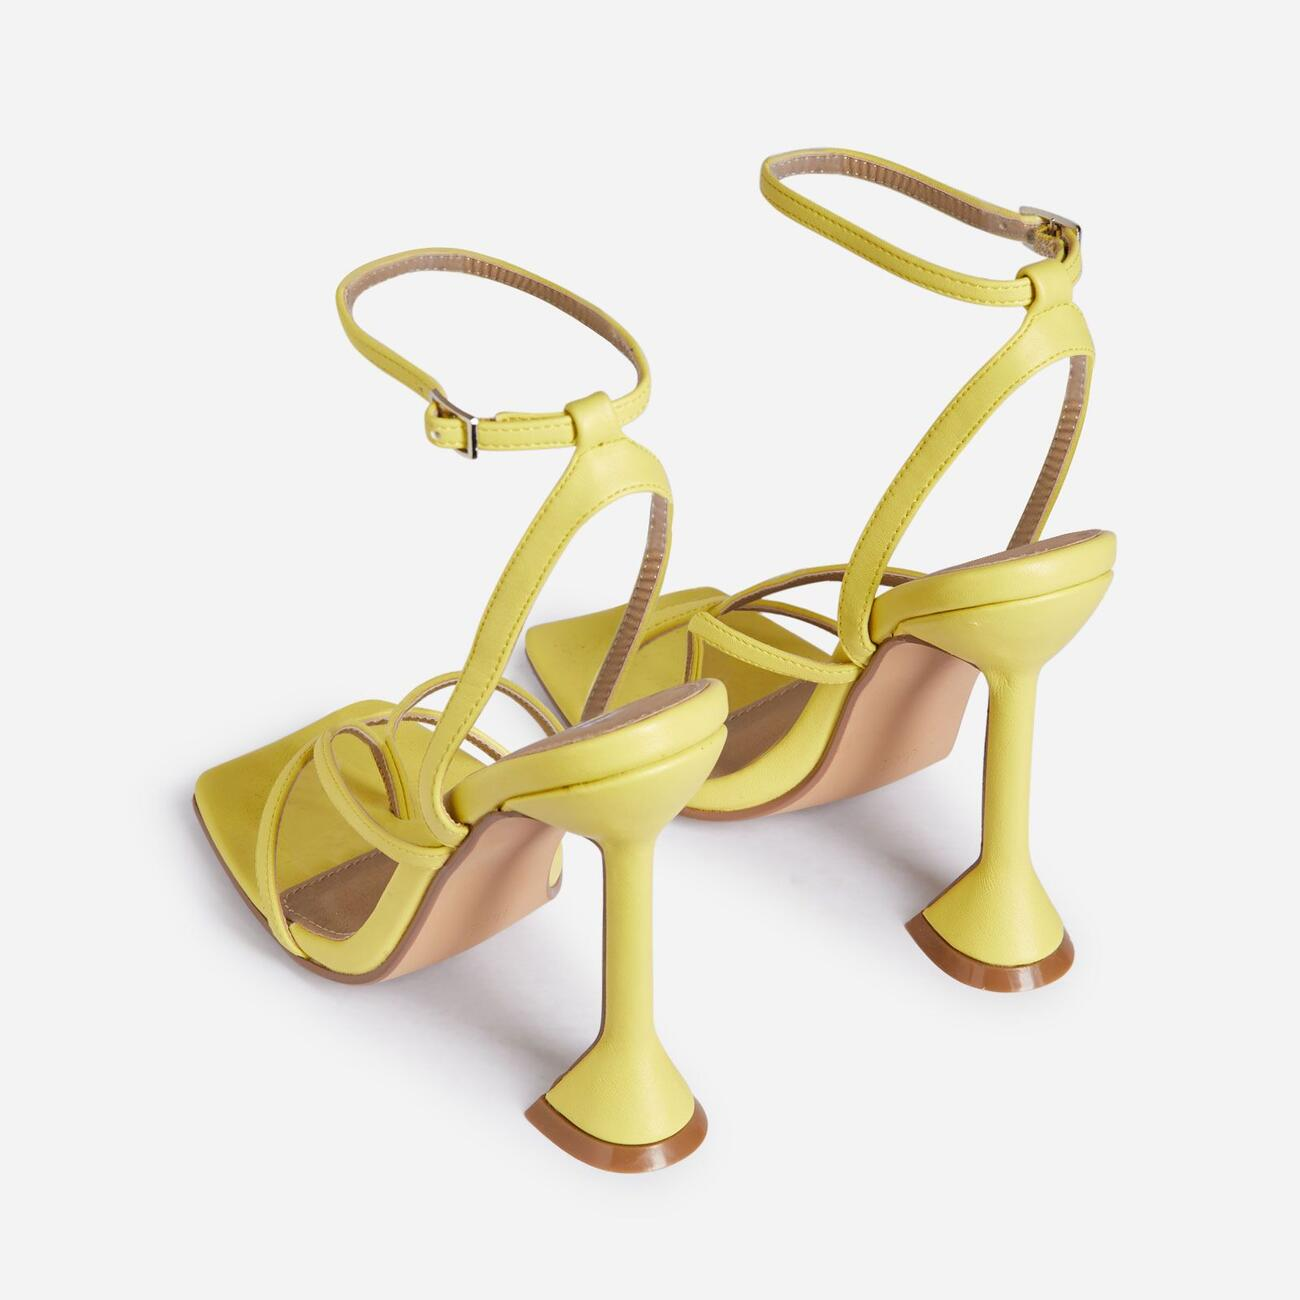 Freestyle Square Toe Pyramid Heel In Yellow Faux Leather Image 3